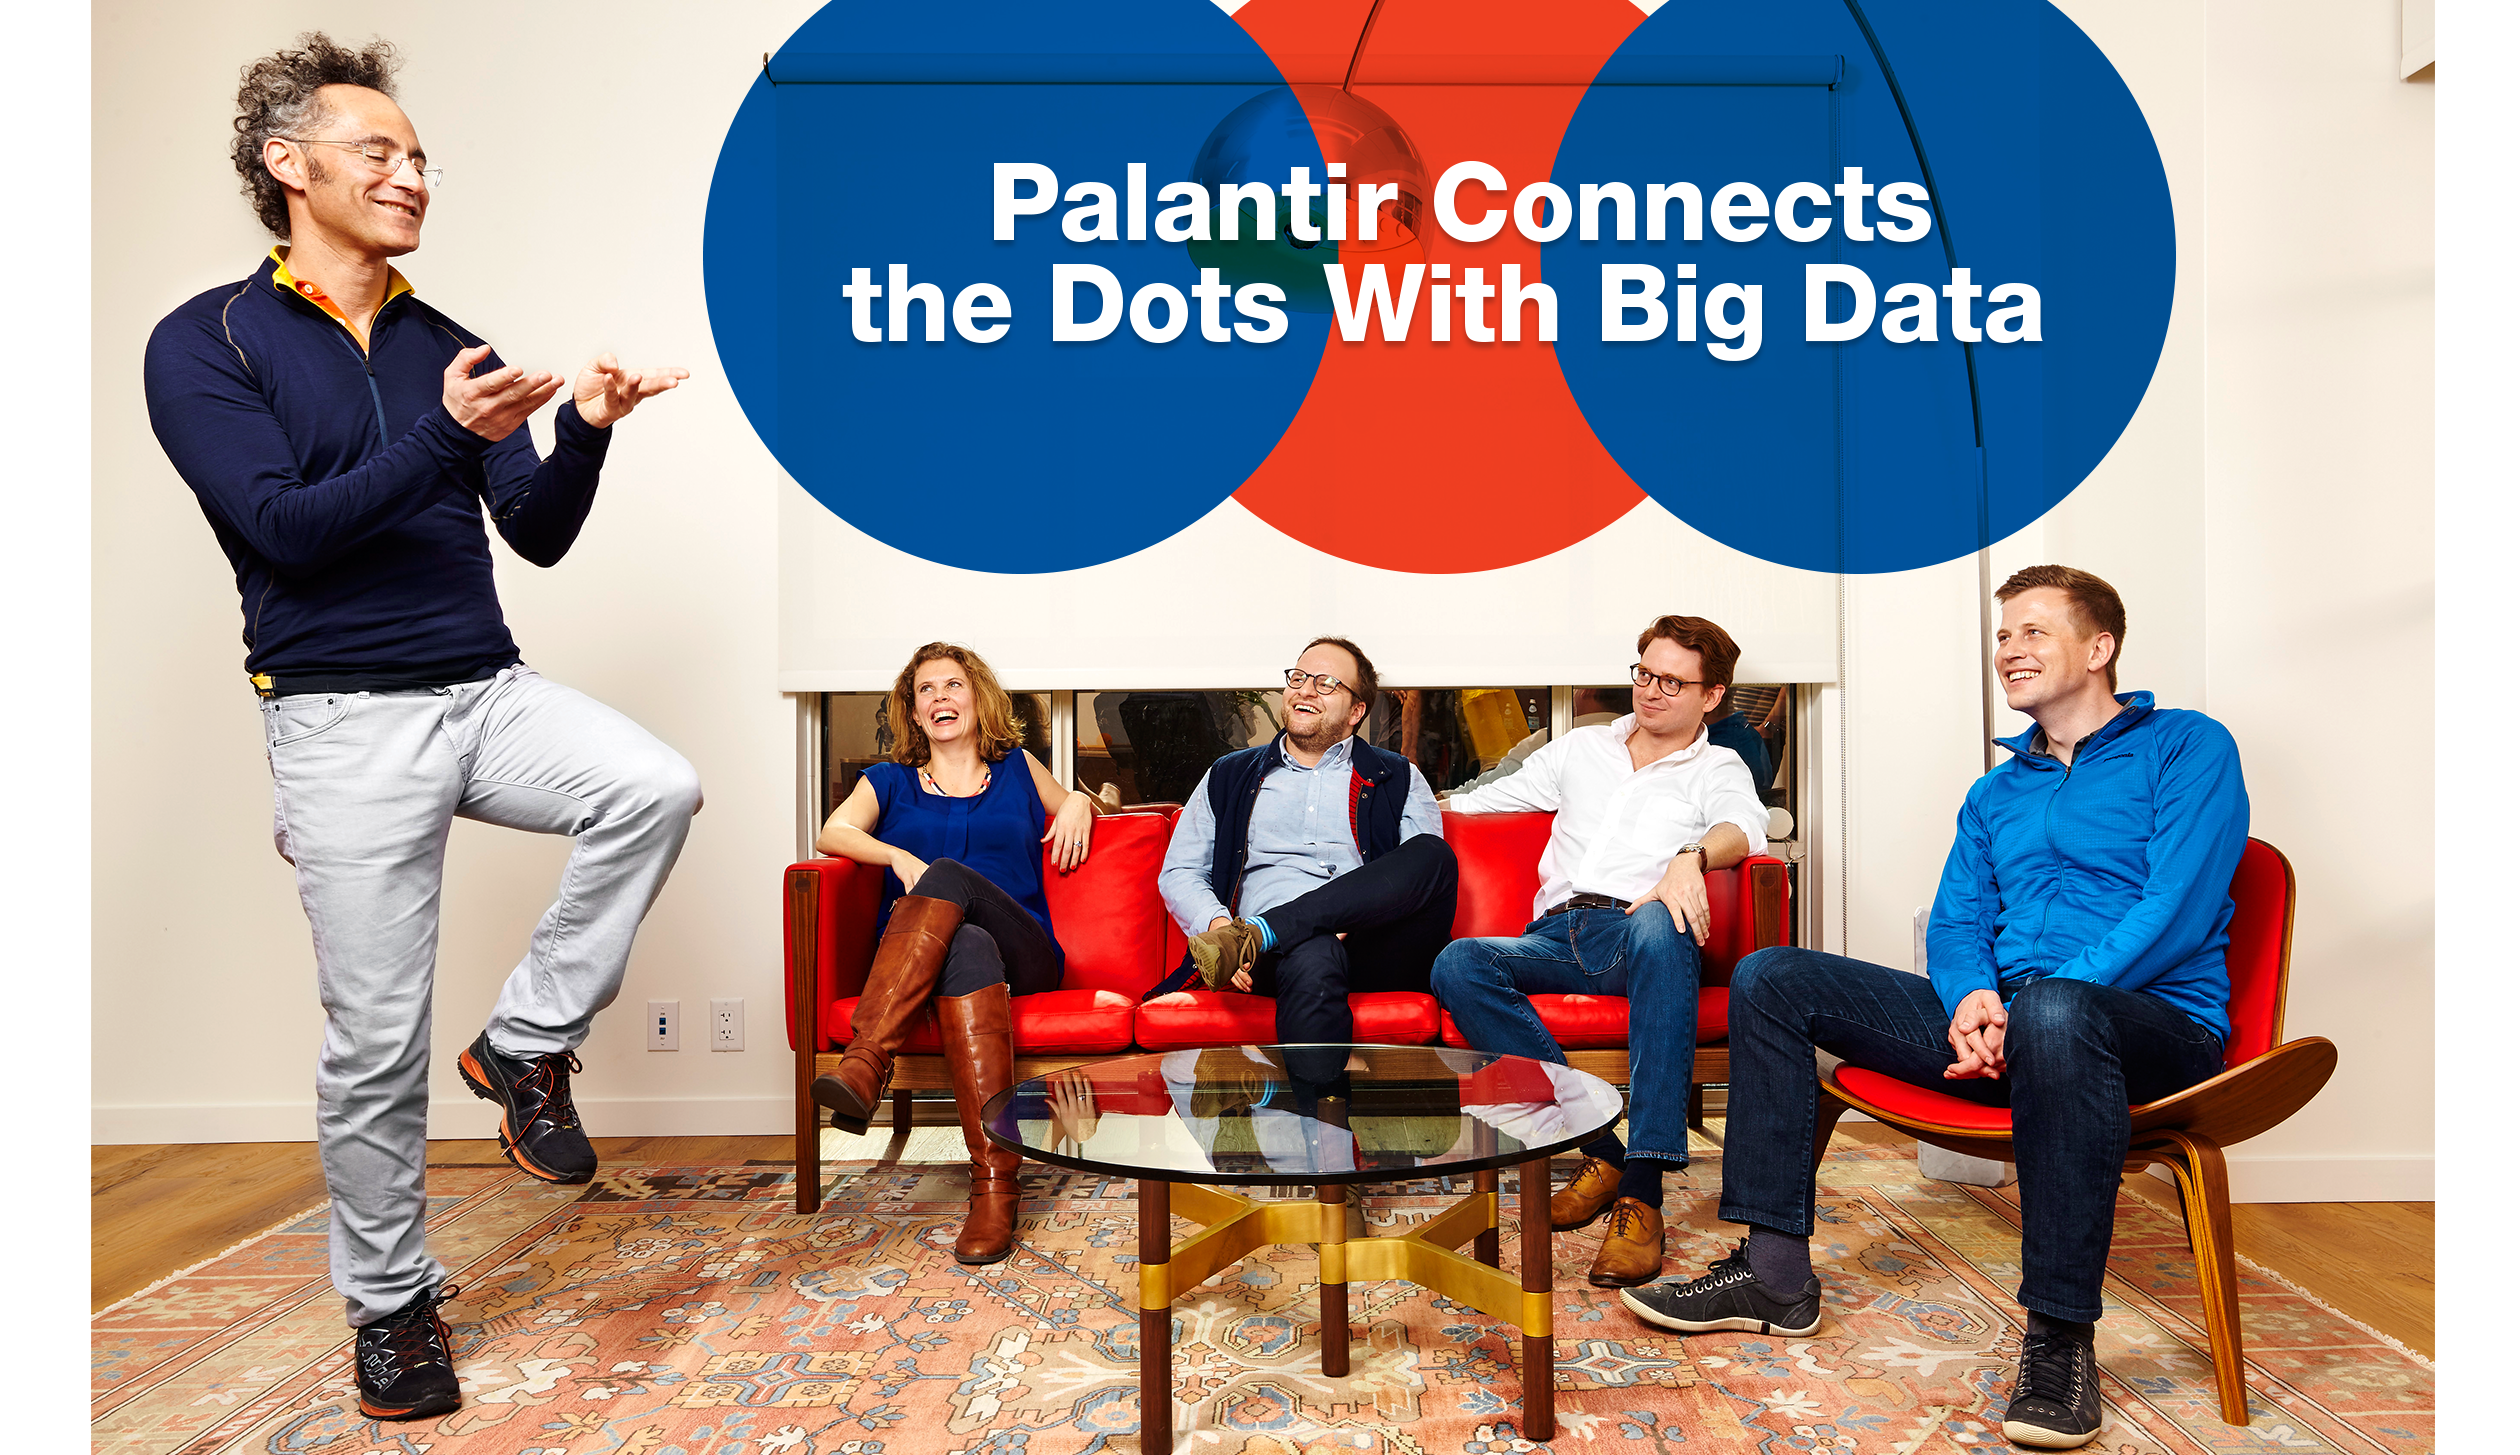 Palantir Connects the Dots With Big Data | Fortune